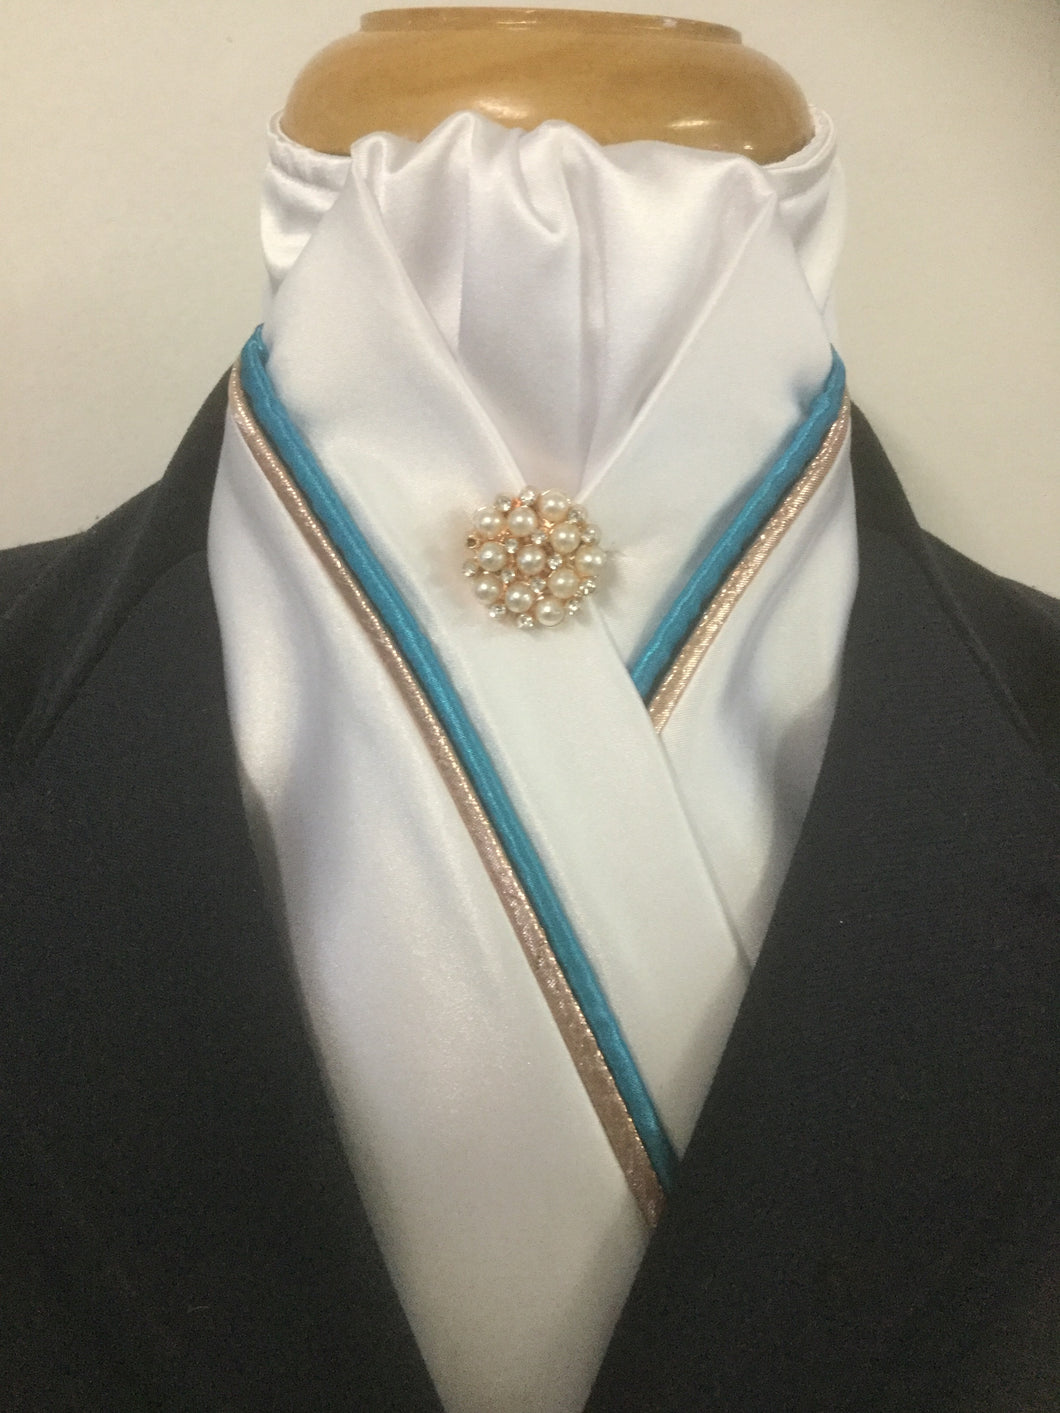 HHD White Satin Custom Stock Tie Rose Gold & Aqua Blue with a Rose Gold Rhinestone Pearl Pin